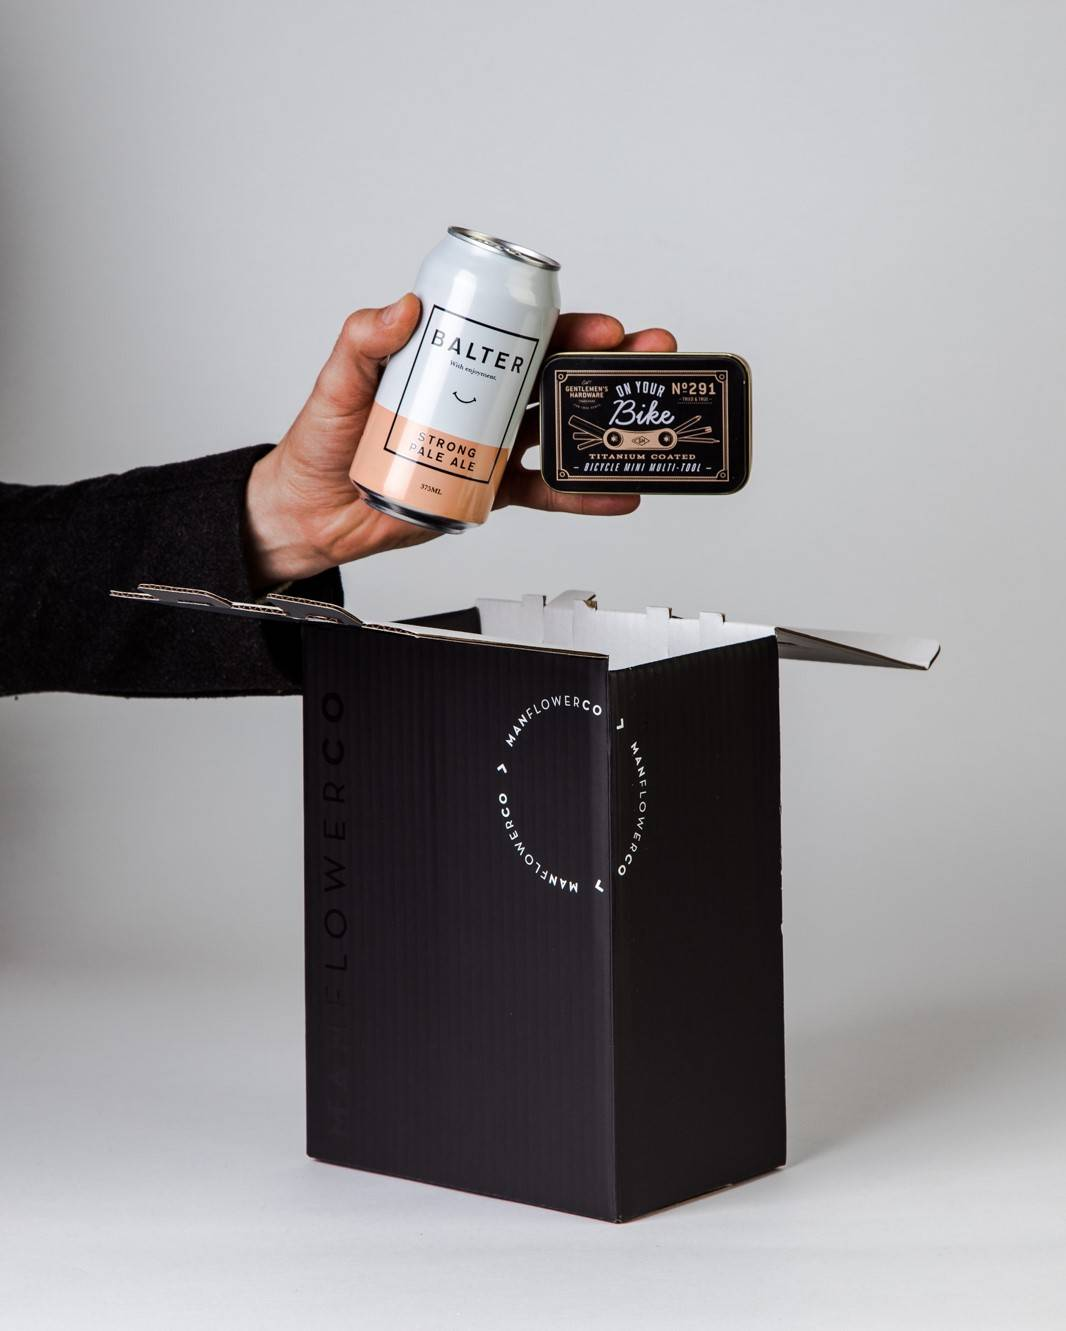 Bike Tool + Beer, part of Manflower Co's range of Father's Day Gifts.